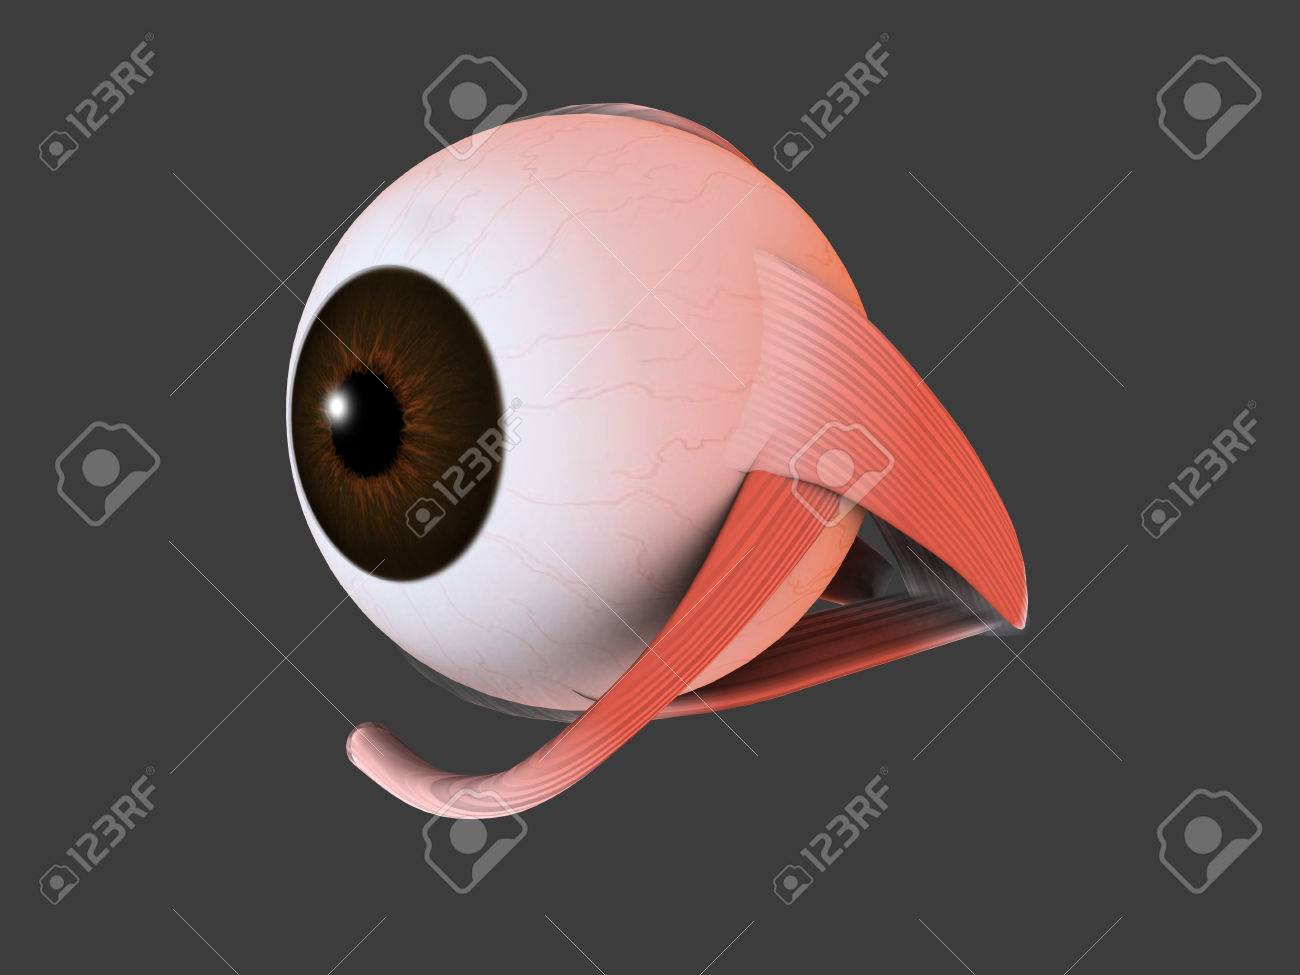 Conceptual Image Of Human Eye Anatomy Stock Photo Picture And